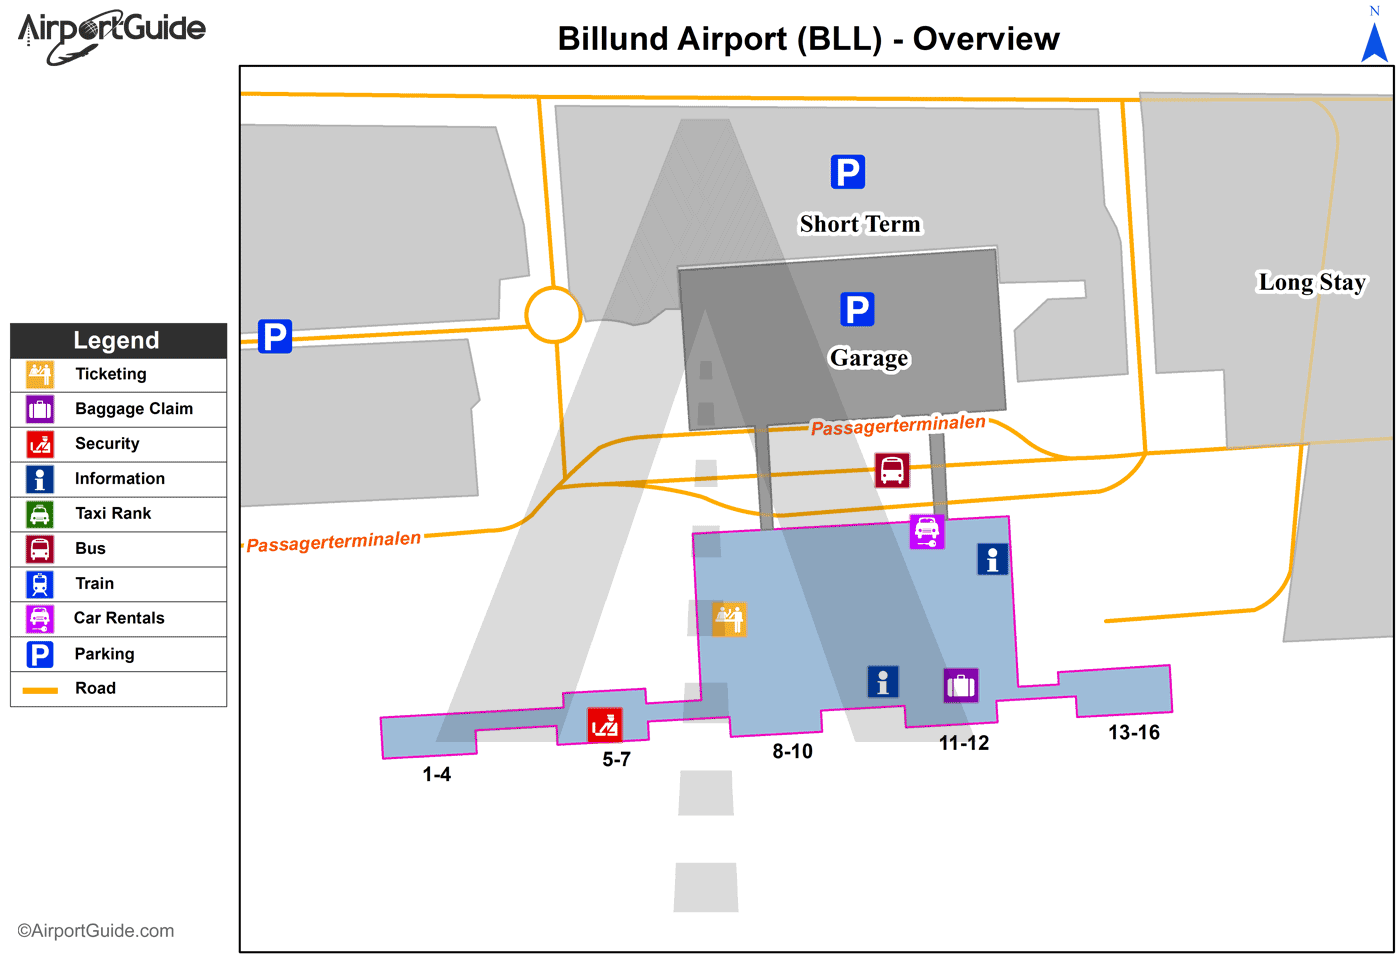 Billund - Billund (BLL) Airport Terminal Map - Overview